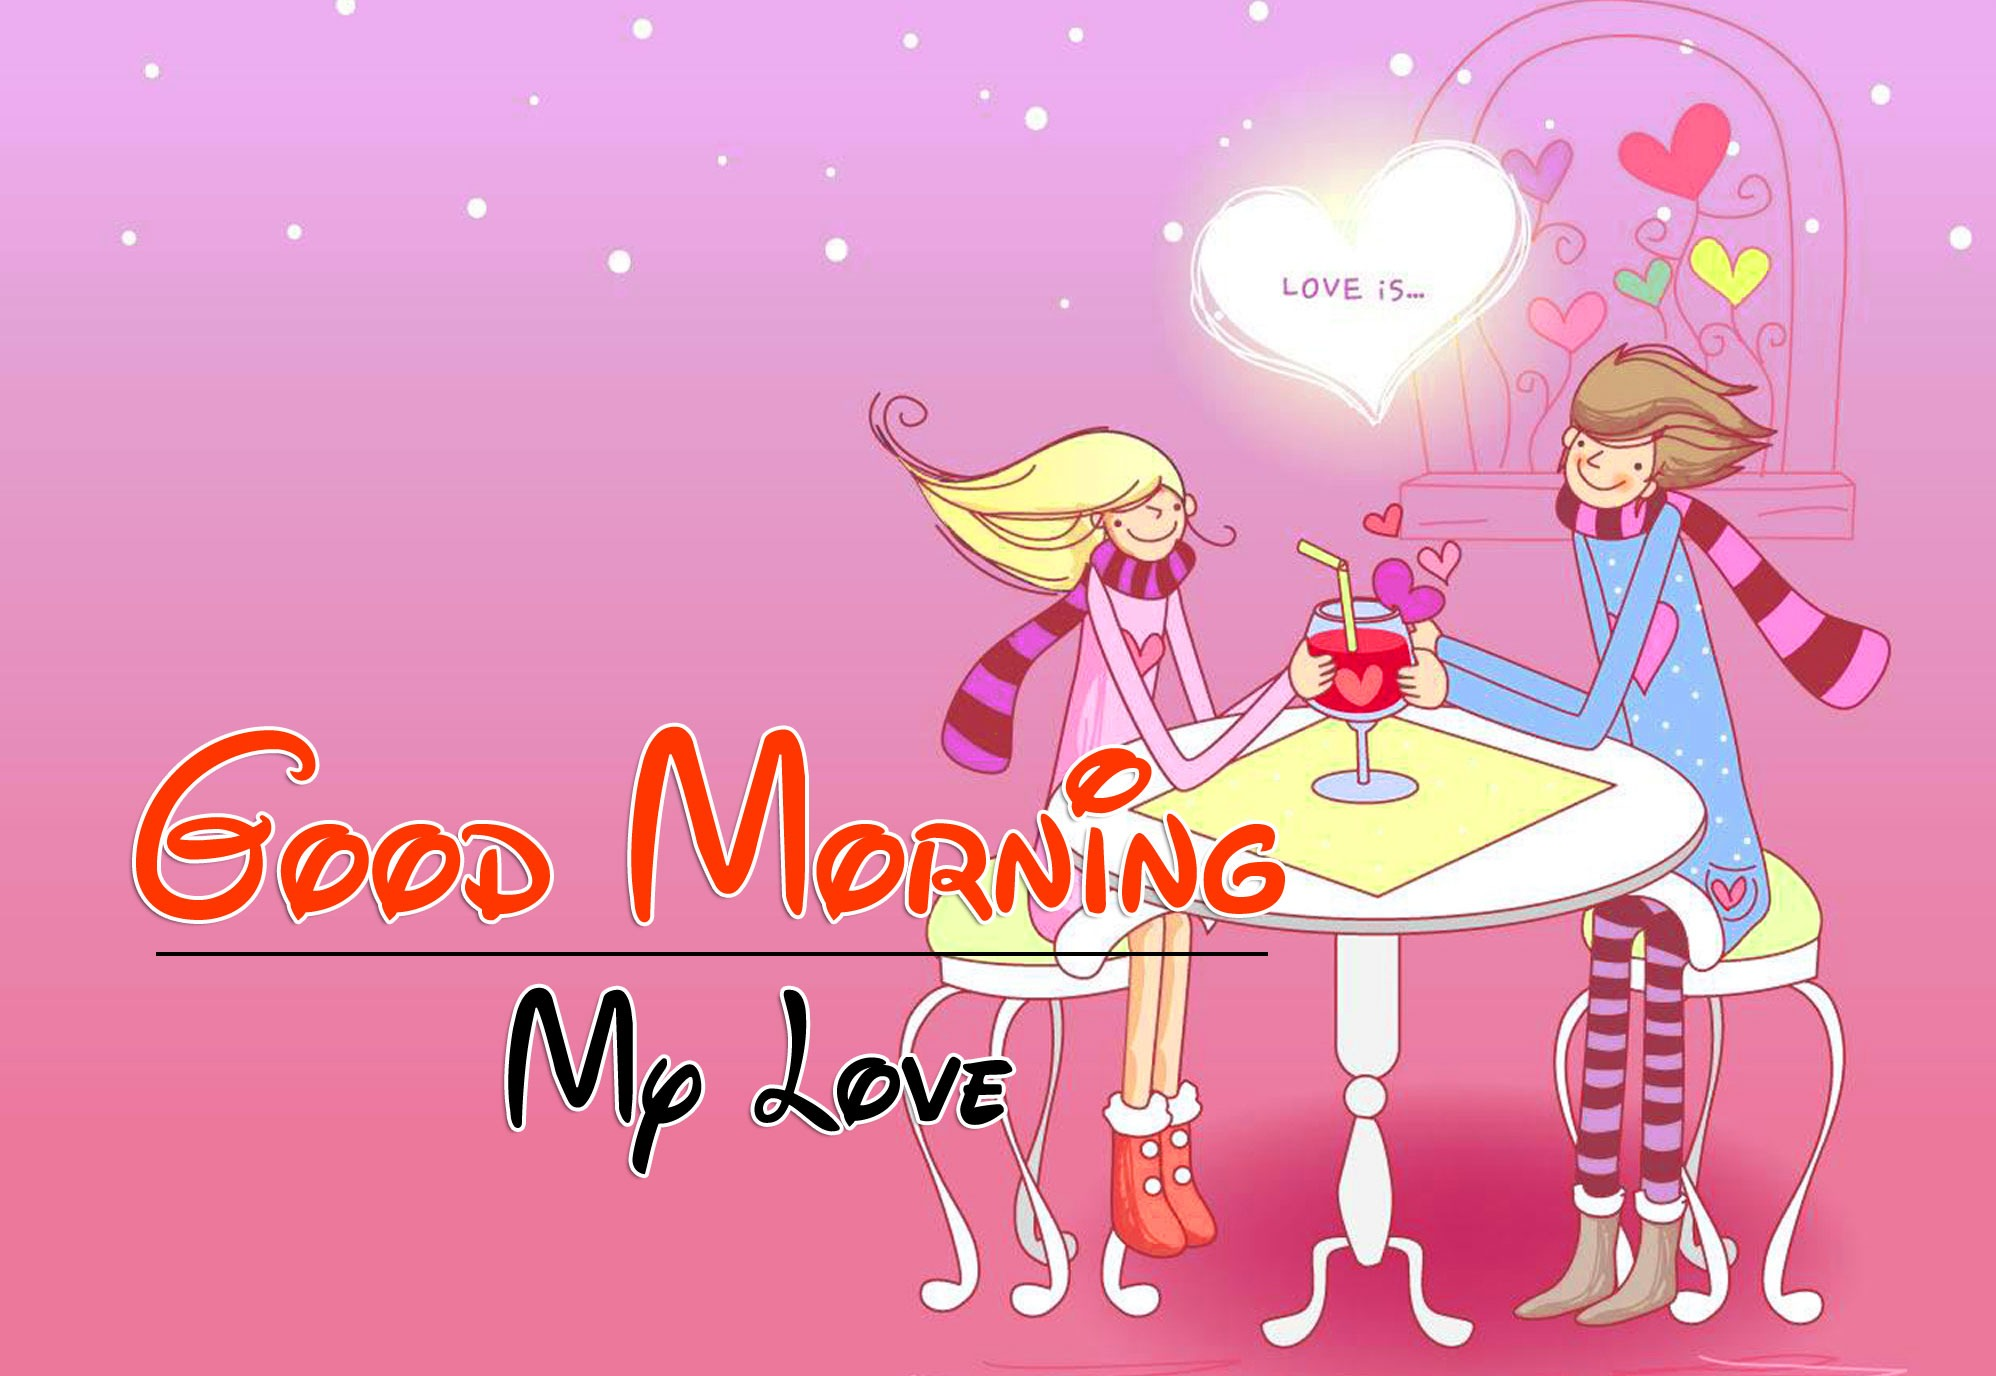 Romantic Good Morning Download Images